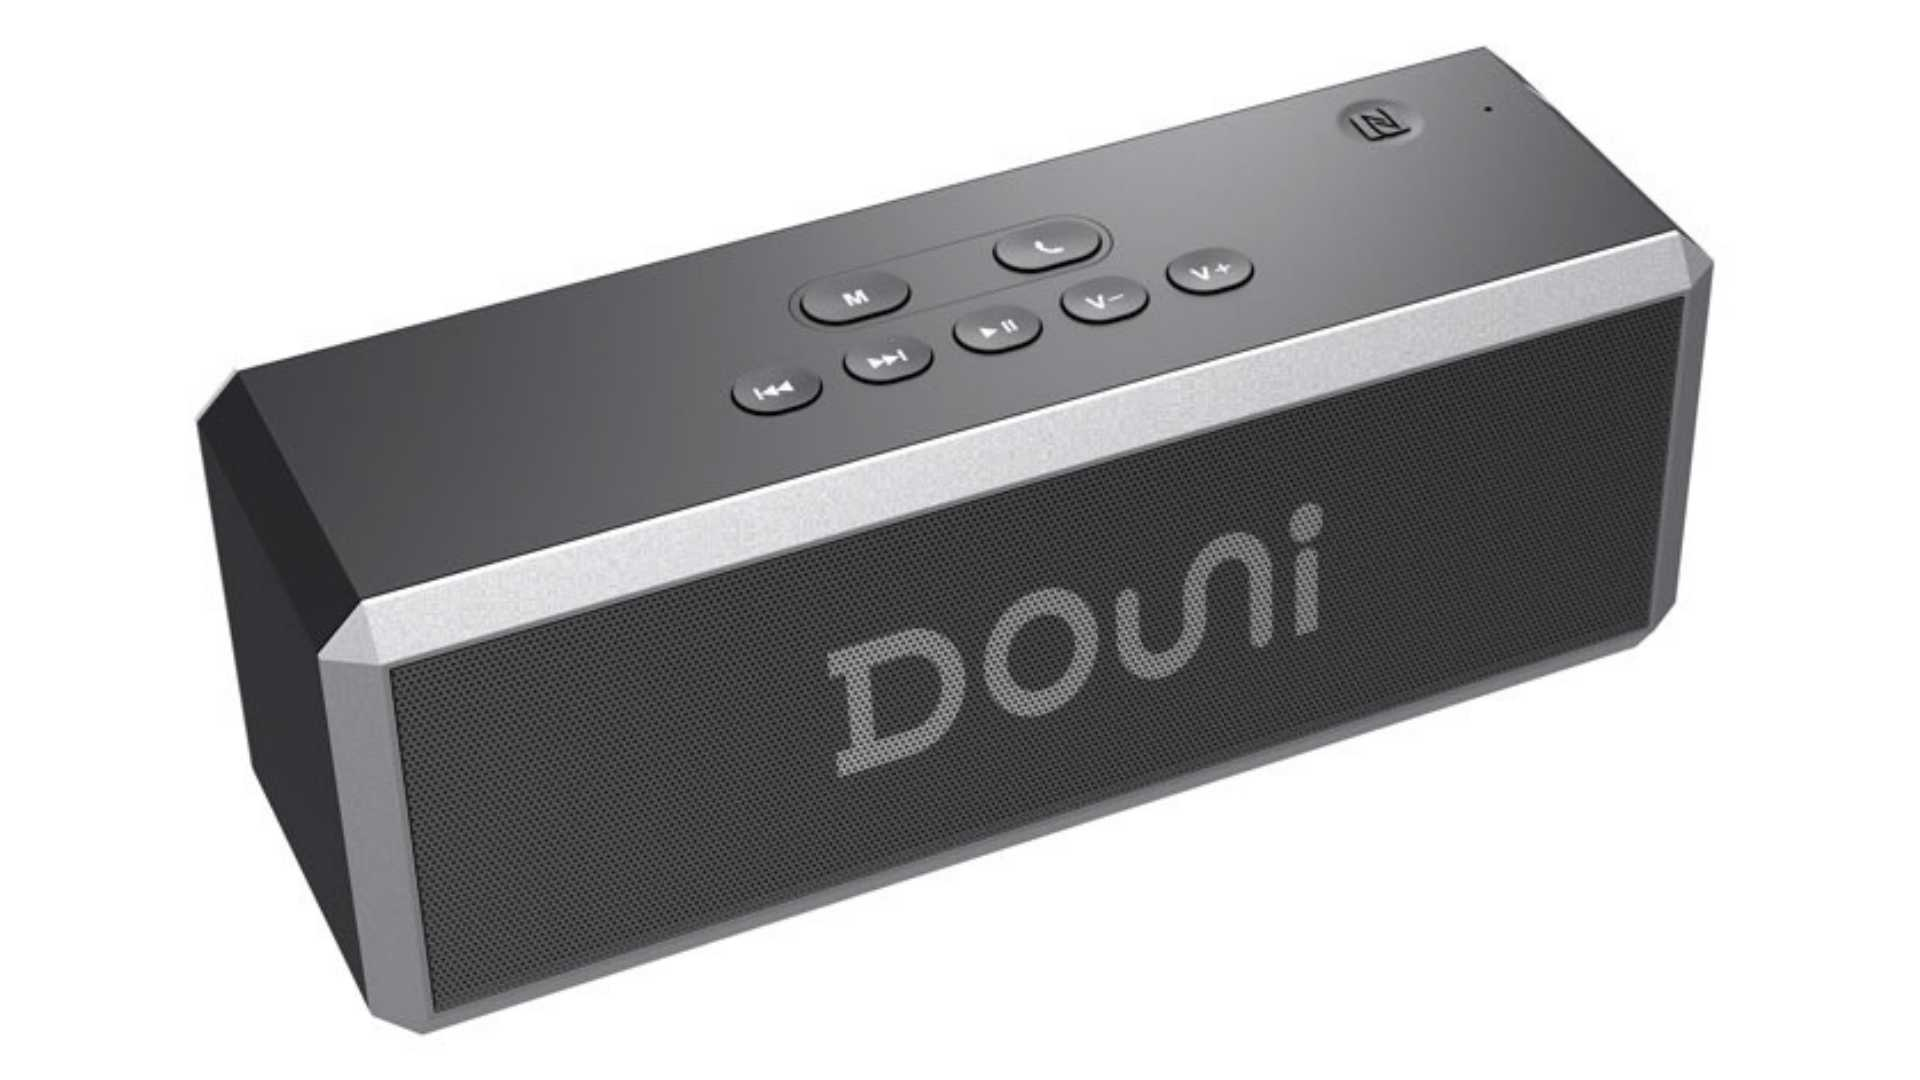 Douni A7 Bluetooth Speaker Review